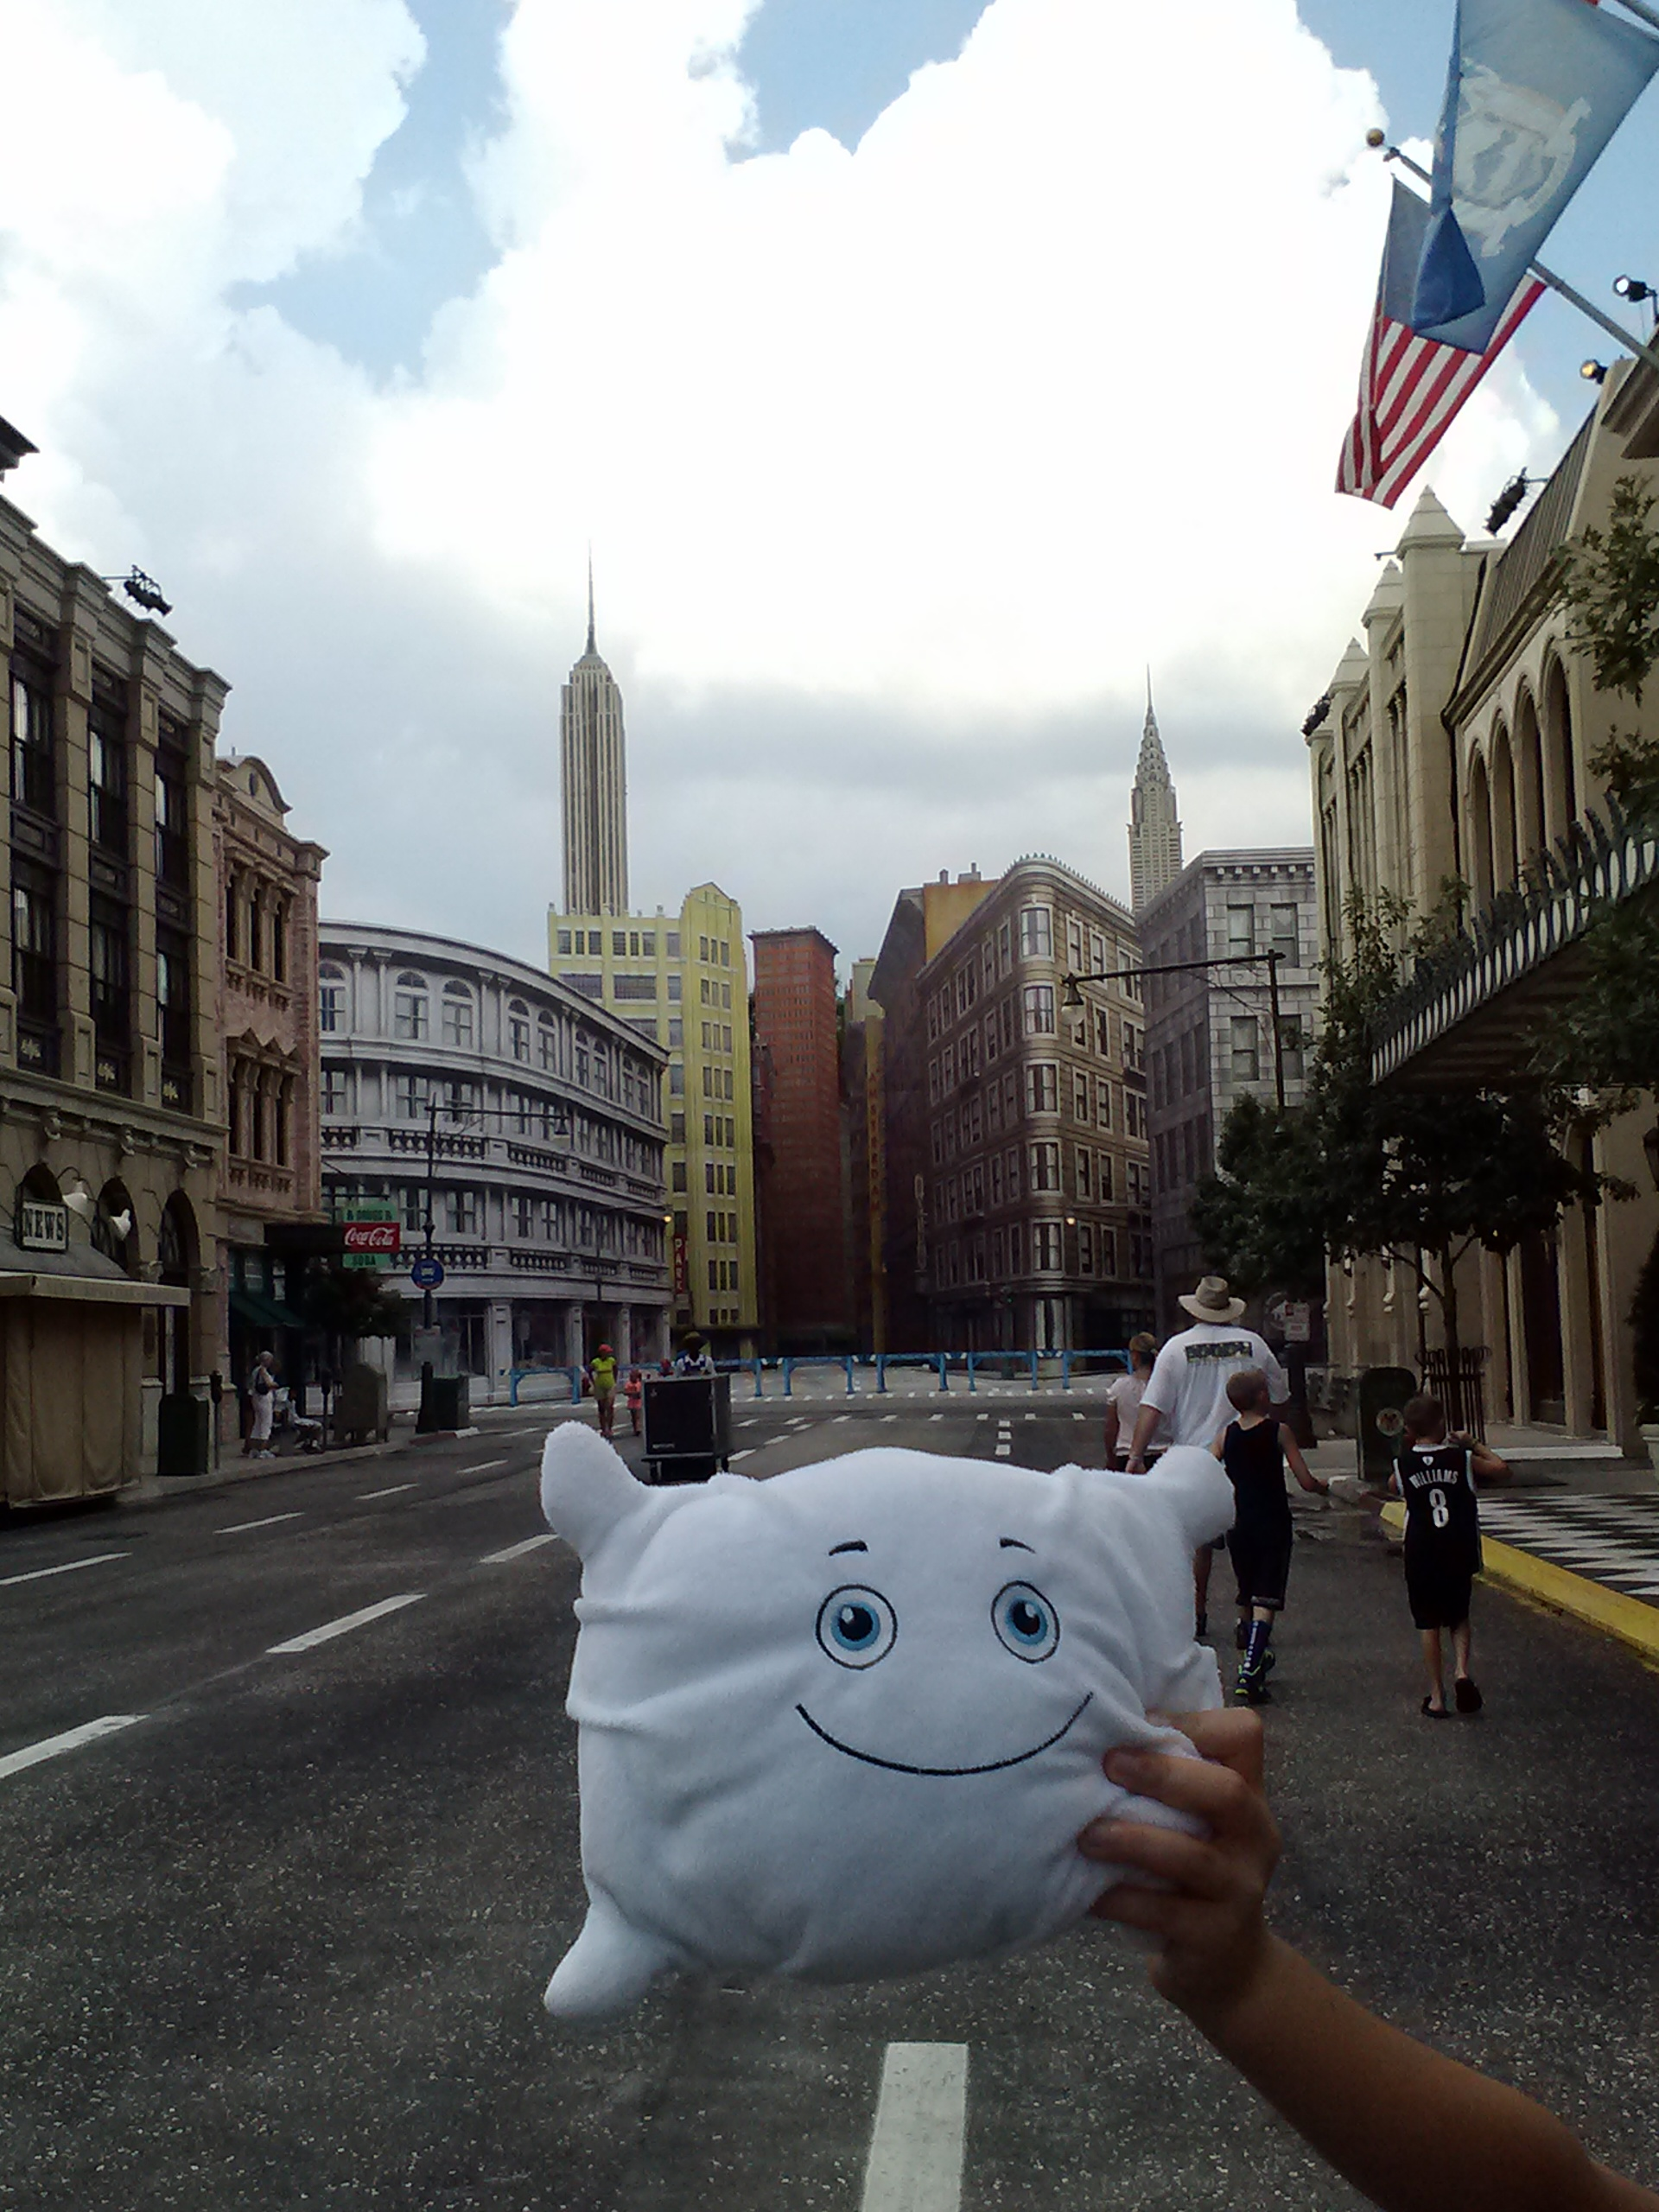 Is McStuffy in New York City or Hollywood Studios at Disney World?